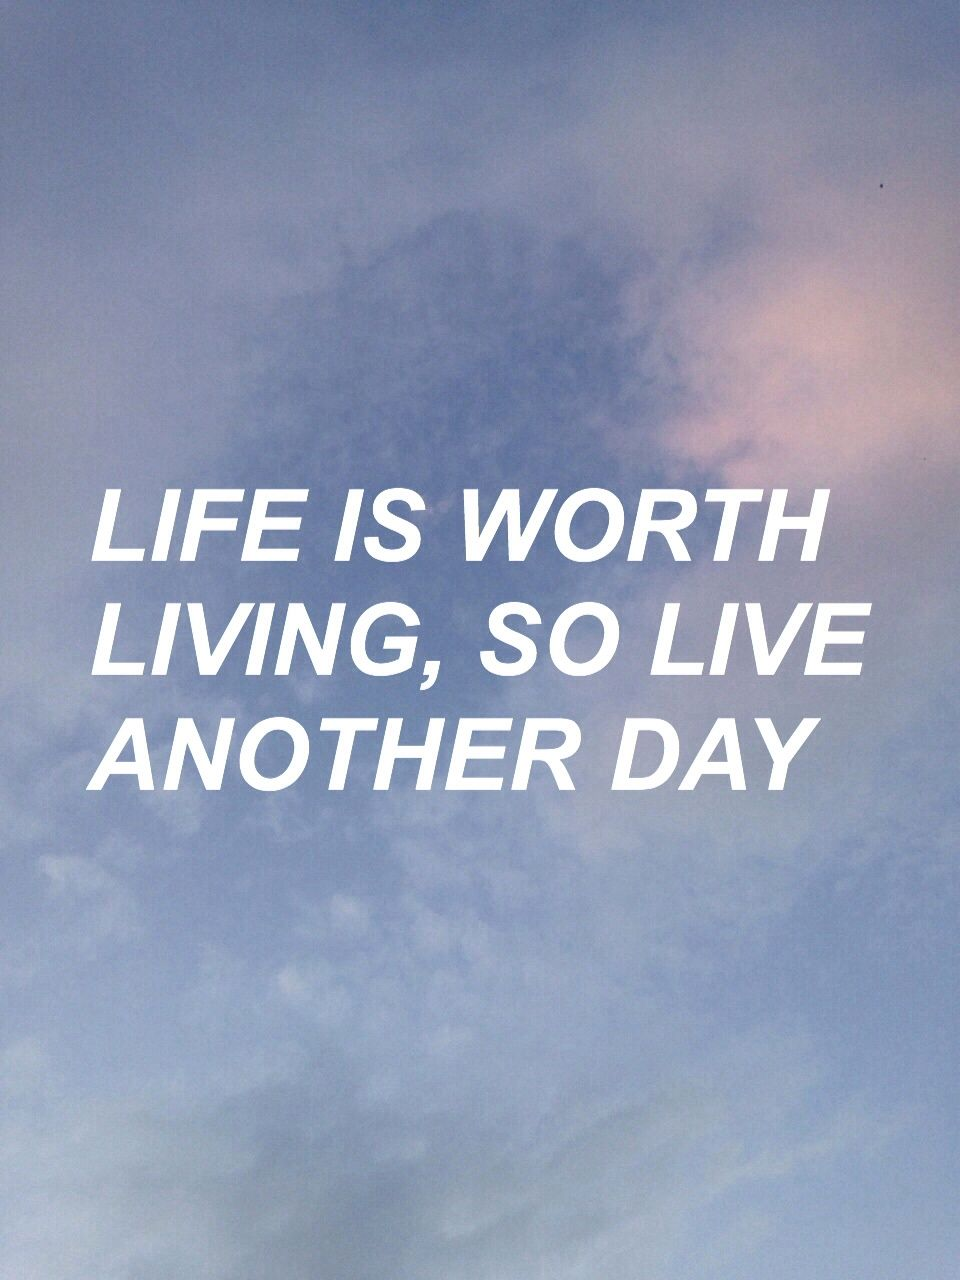 Life Is Worth Living Justin Bieber Lyrics Life Quotes Justin